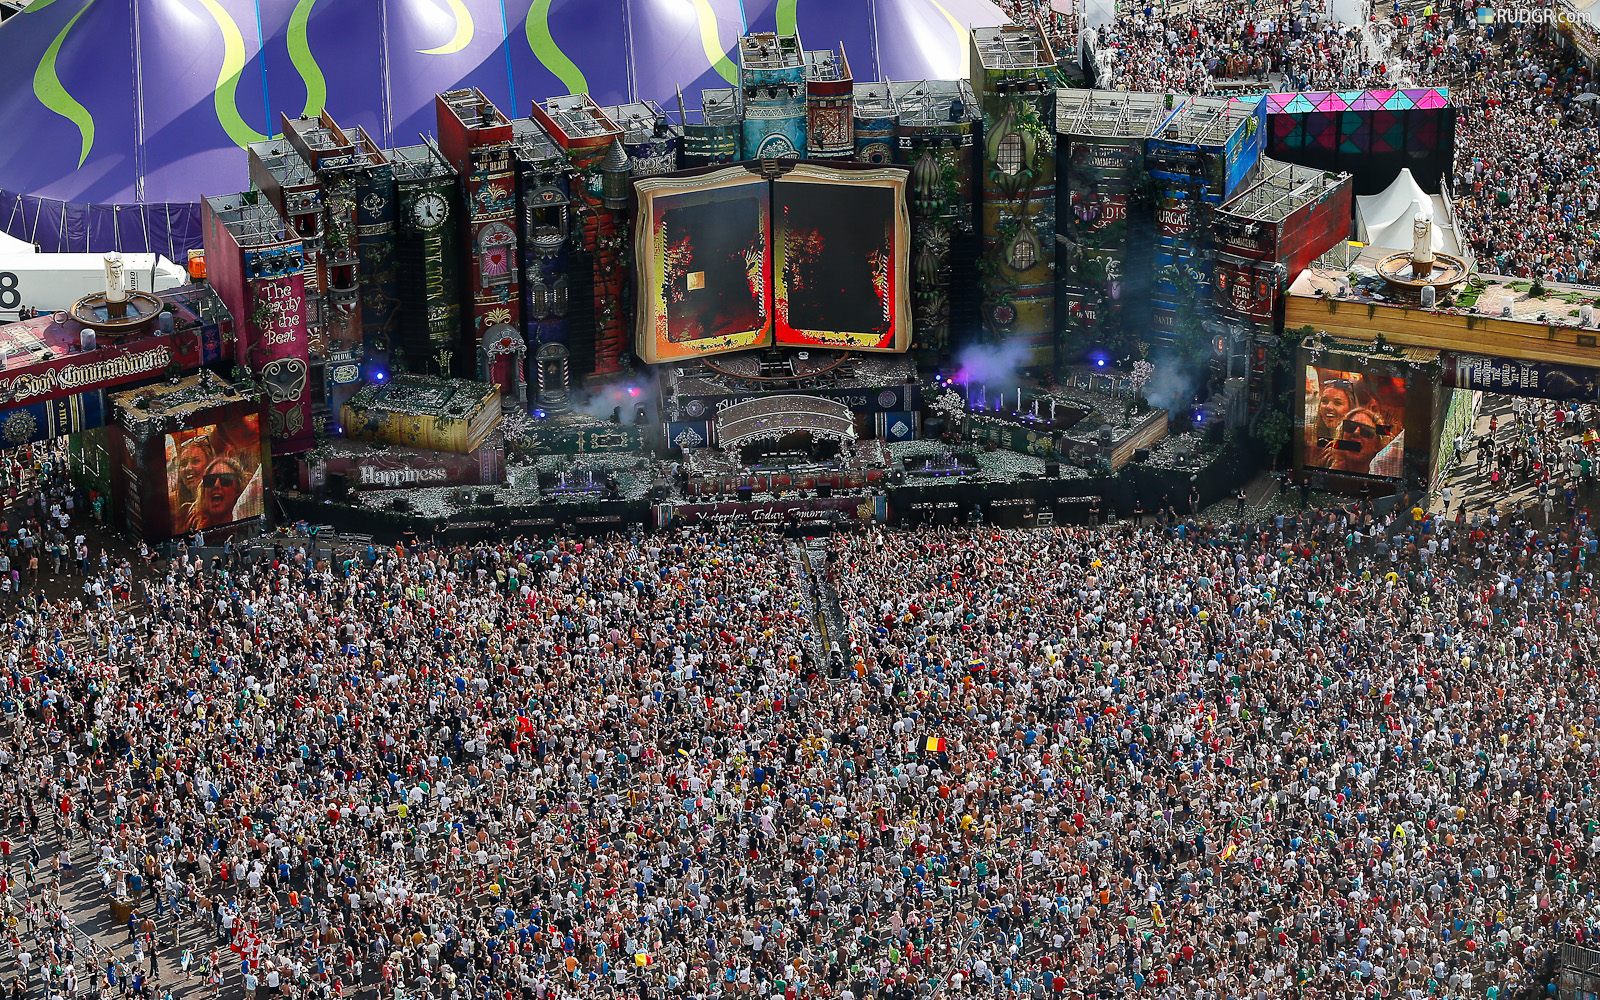 Tomorrowland mainstage